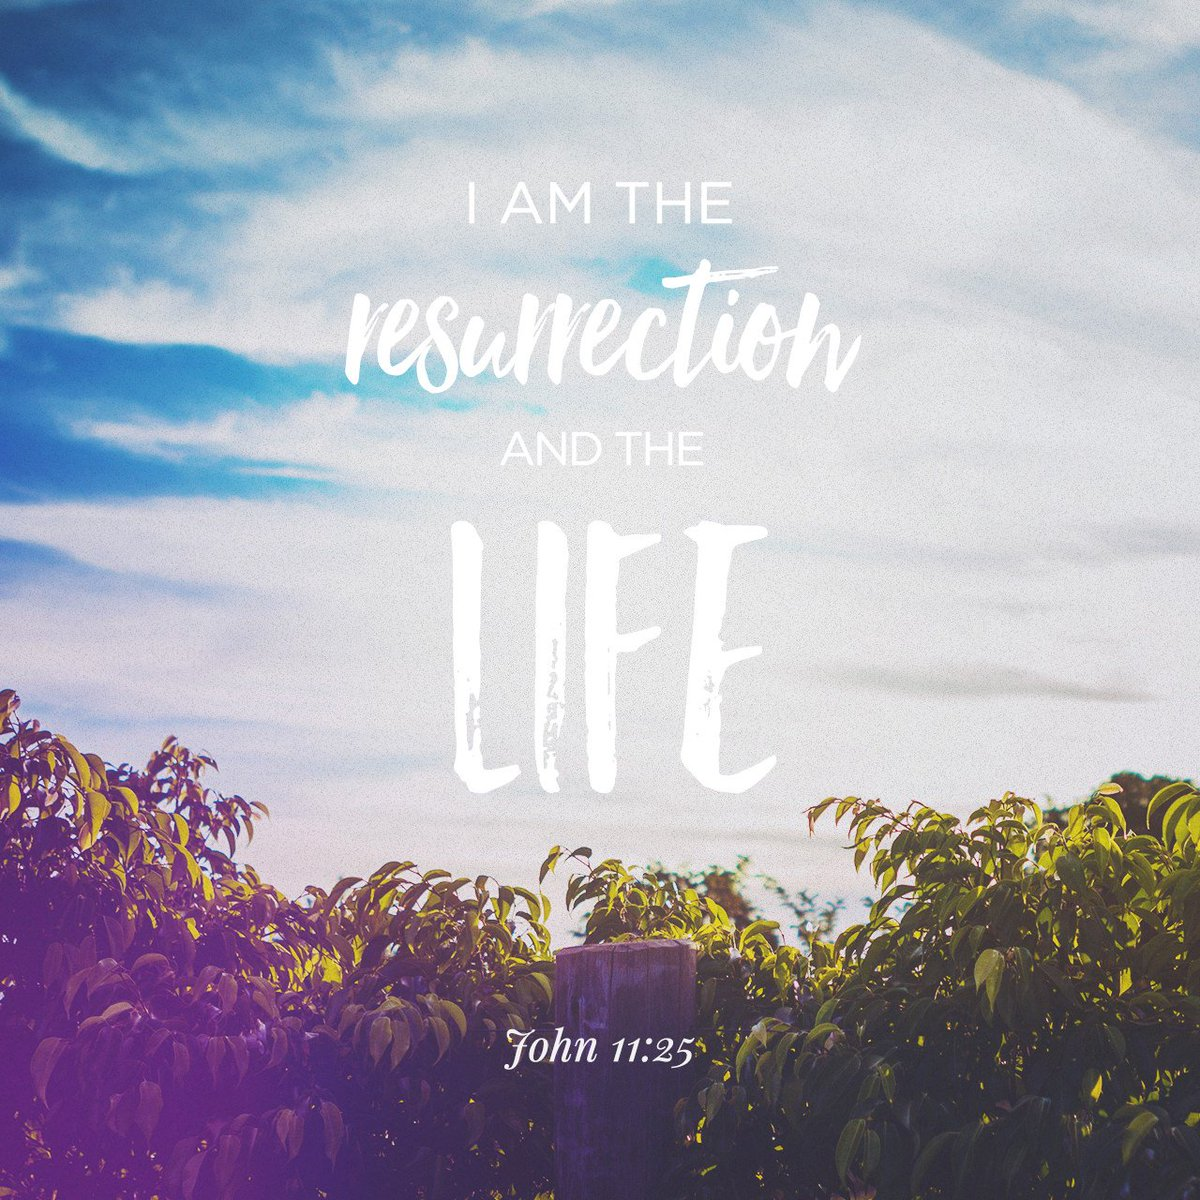 """Jesus said to her,""""I am the resurrection and the life. The one who believes in… https://t.co/esnr5gfYtS https://t.co/DhUMwybzMP"""